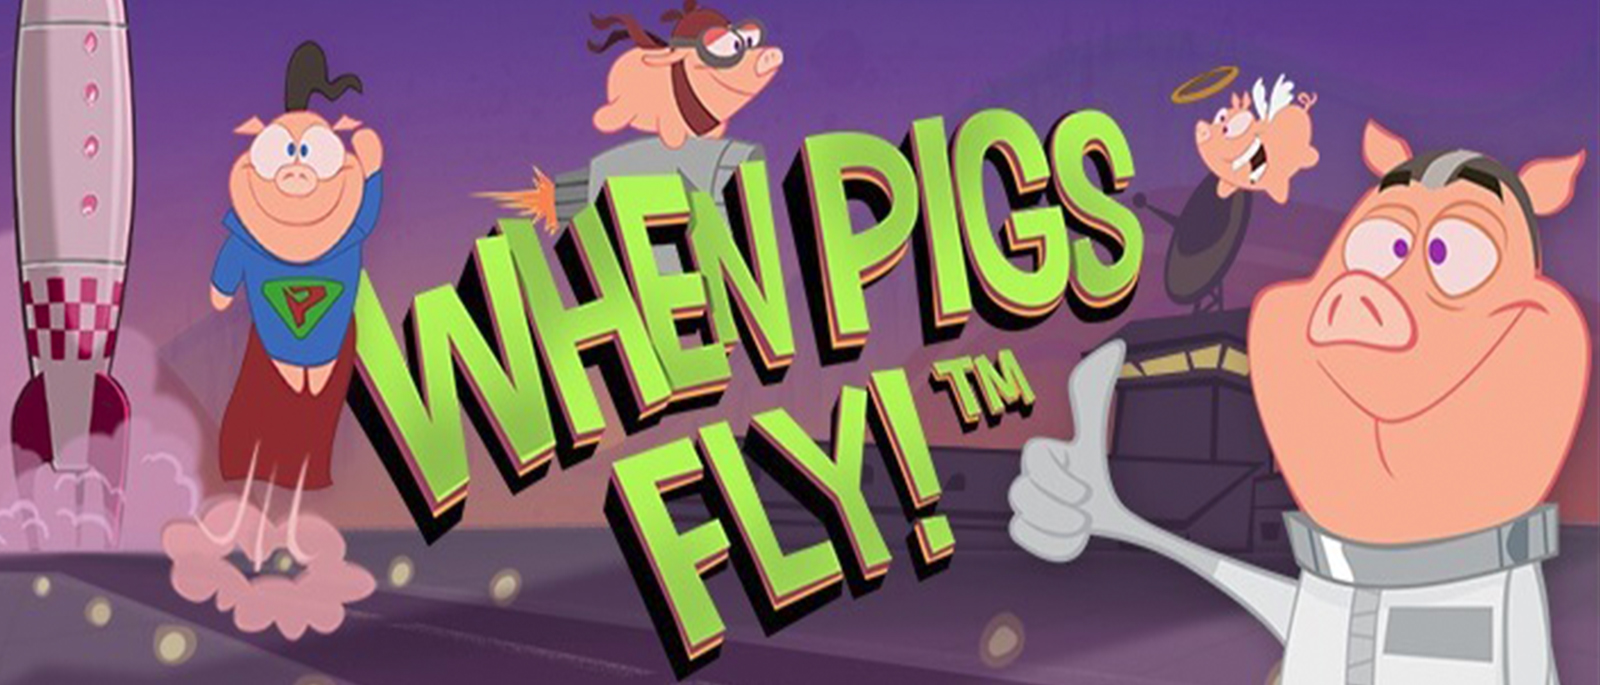 casino online roulette when pigs fly